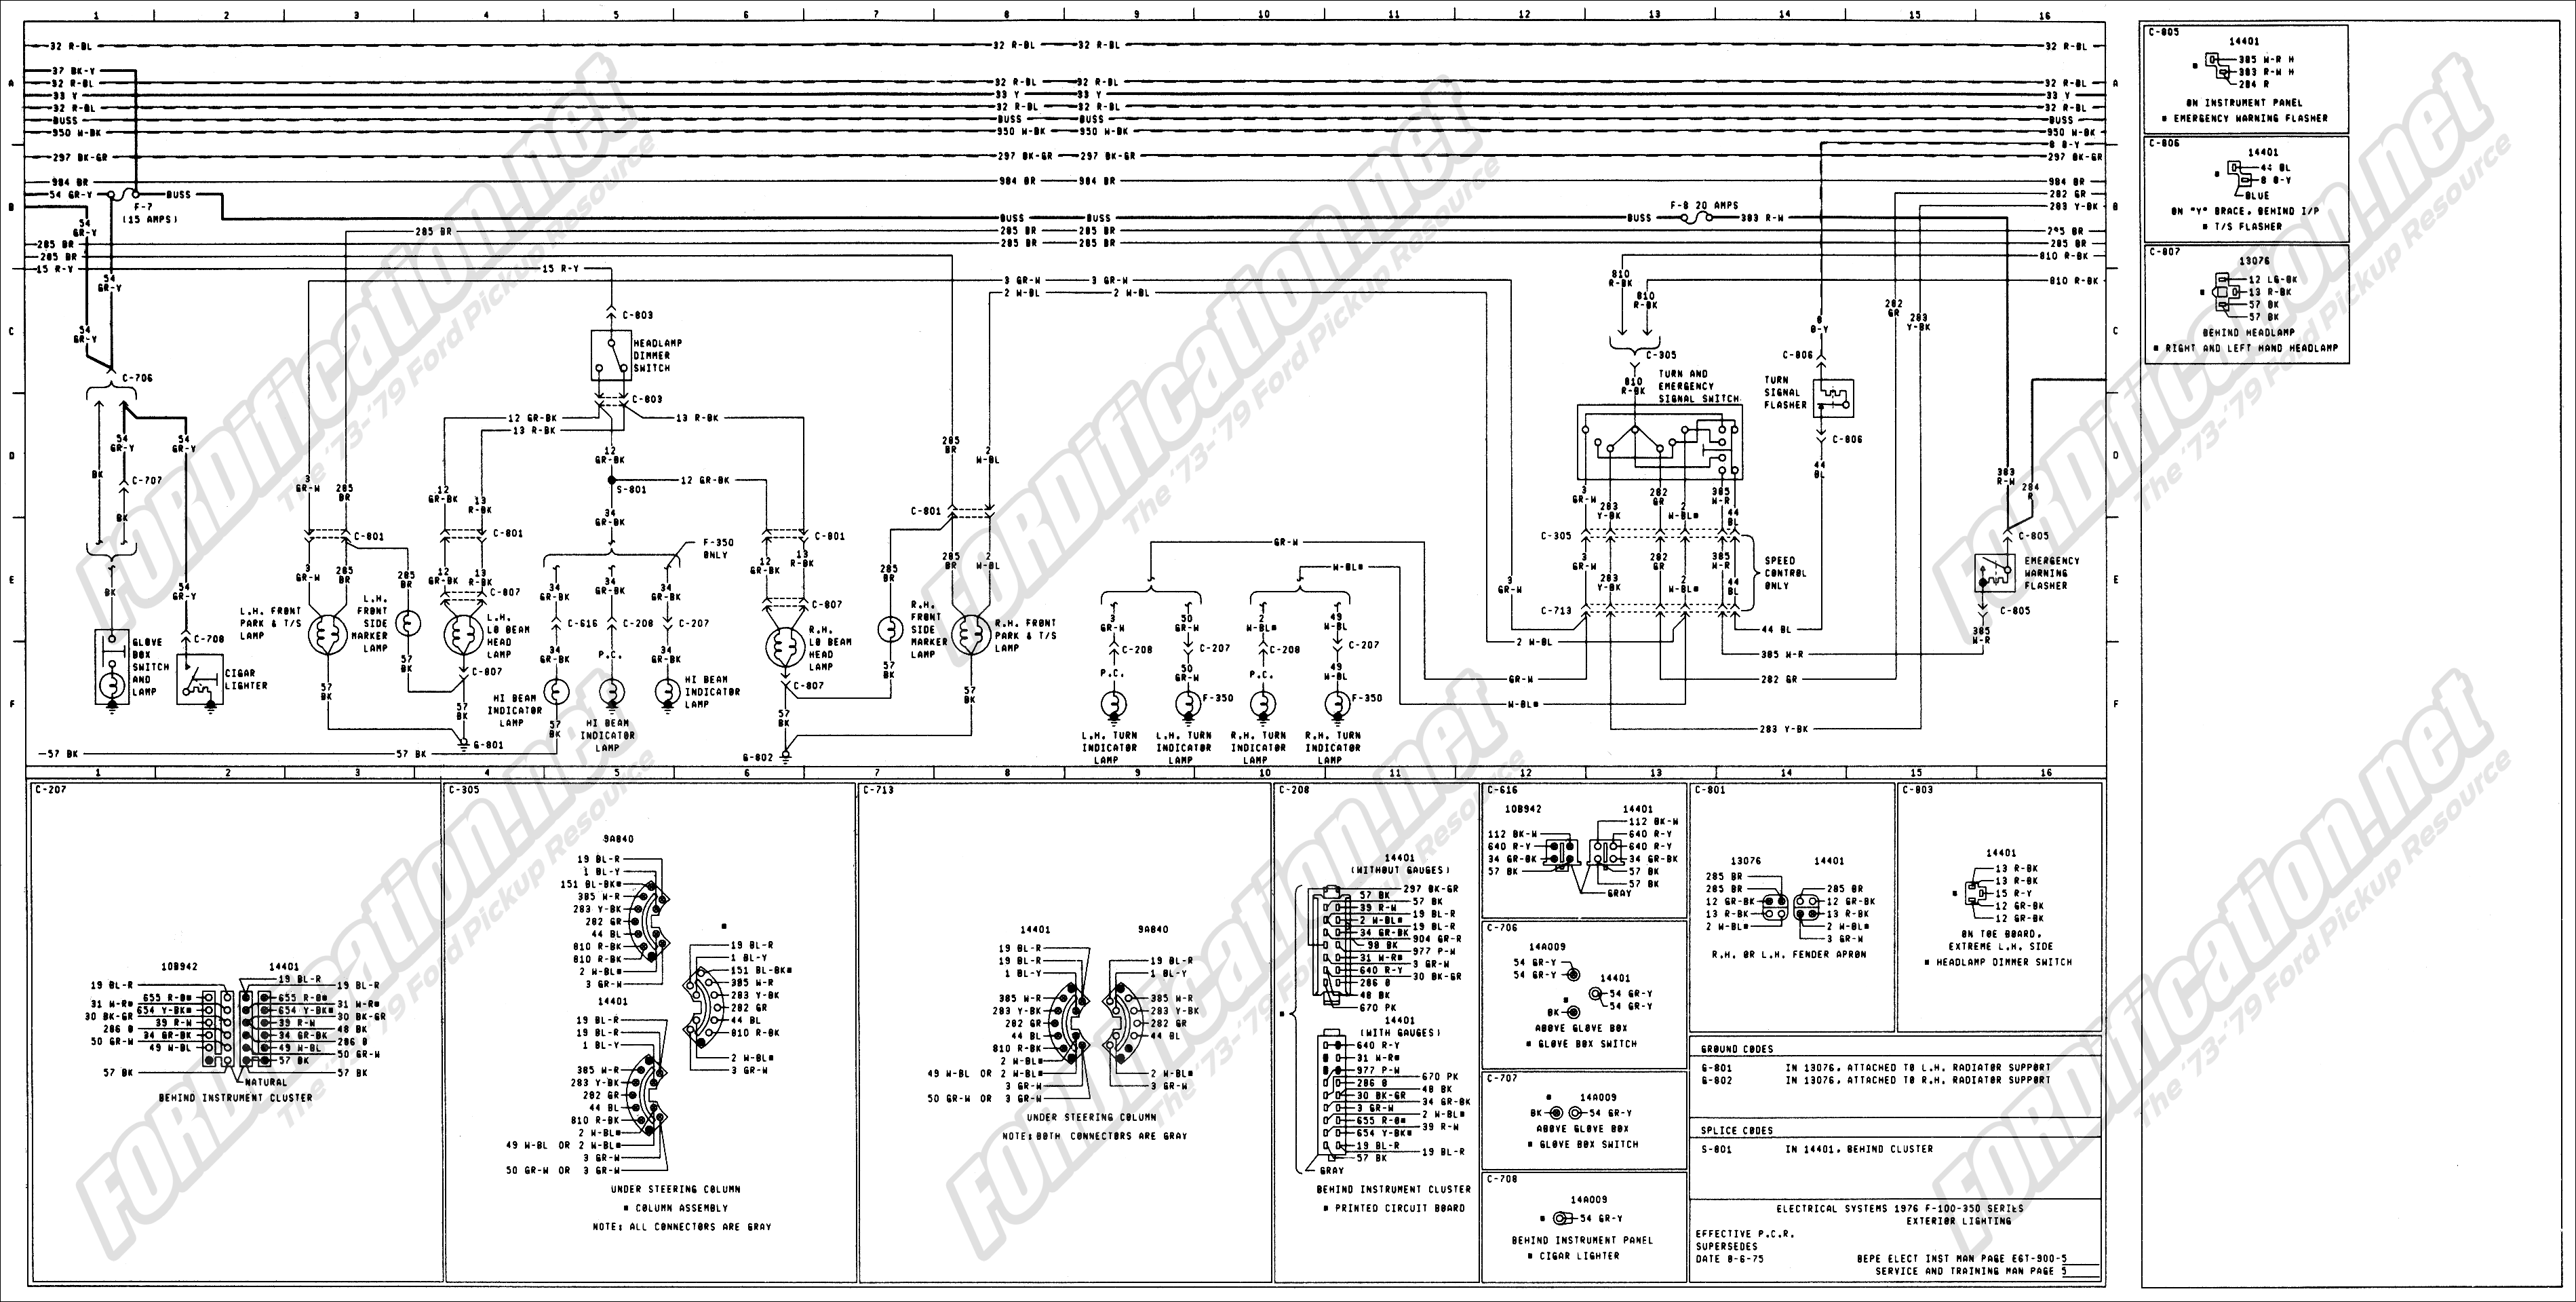 1978 ford f150 lariat wiring diagram 2 13 wohnungzumieten de \u20221973 1979 ford truck wiring diagrams schematics fordification net rh fordification net 1973 ford f100 wiring